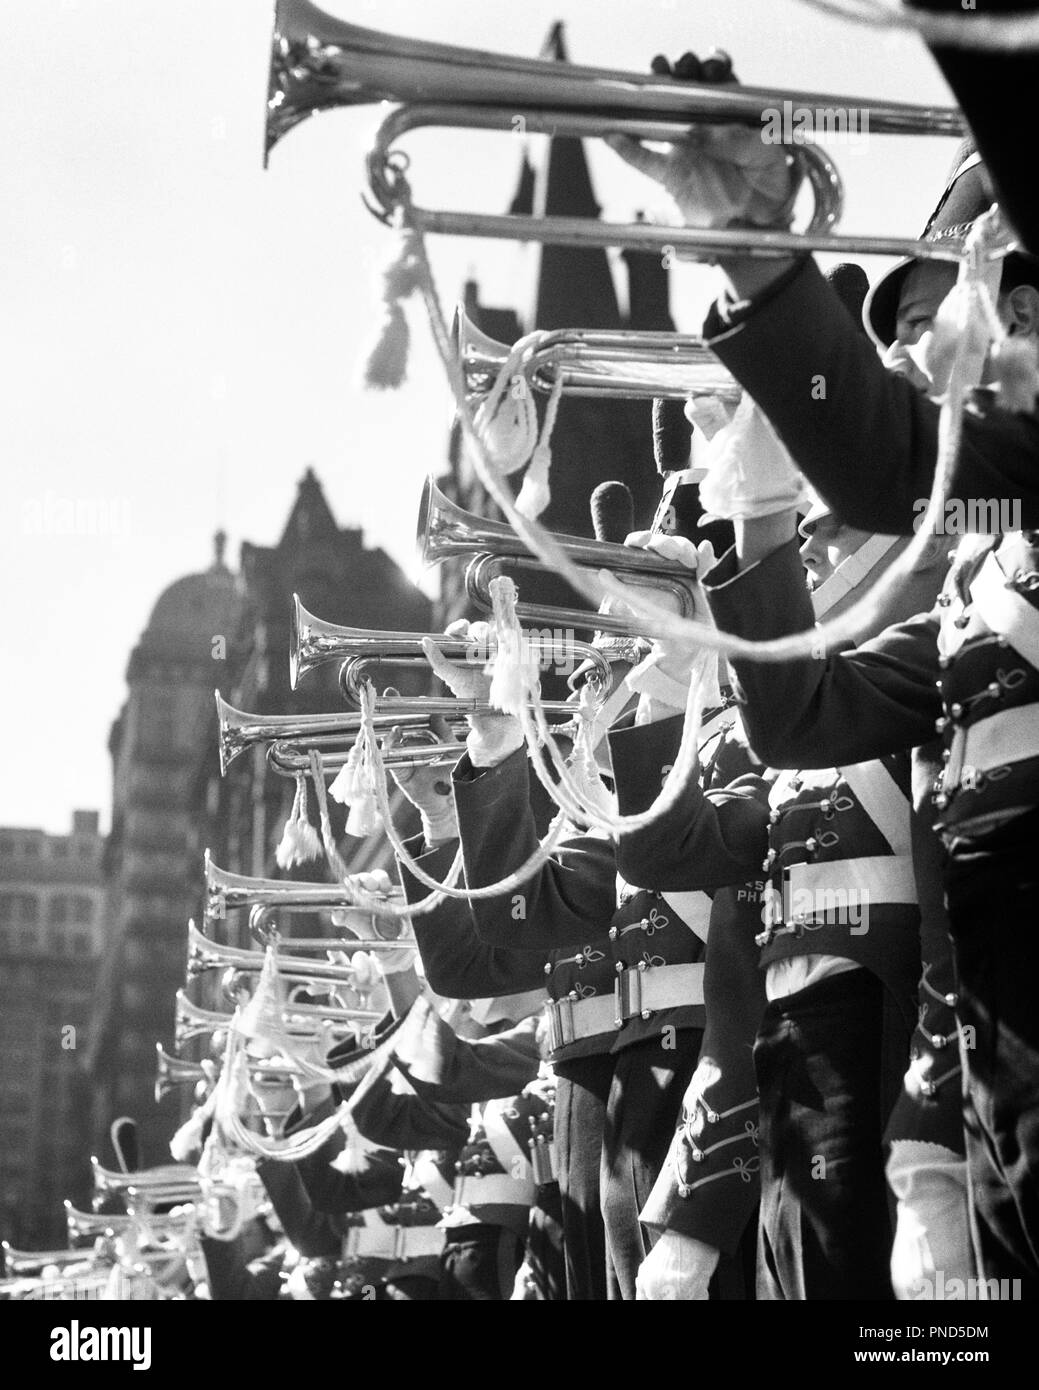 1930s MUSICAL INSTRUMENTS MARCHING MILITARY BRASS BAND IN UNIFORMS HERALDING PLAYING FLOURISHES ON BUGLES - m4476 HAR001 HARS B&W HORNS FREEDOM PERFORMING OCCUPATION HAPPINESS UNIVERSITIES CAREERS LOUD LOW ANGLE PRIDE ON OCCUPATIONS HERALDING HIGHER EDUCATION CADETS COLLEGES BUGLE SYMBOLIC COOPERATION CORPS PAGEANTRY PLAYED PRECISION TOGETHERNESS YOUNG ADULT MAN BLACK AND WHITE BUGLES CEREMONIAL HAR001 OLD FASHIONED PARADES REPRESENTATION TRUMPETS - Stock Image